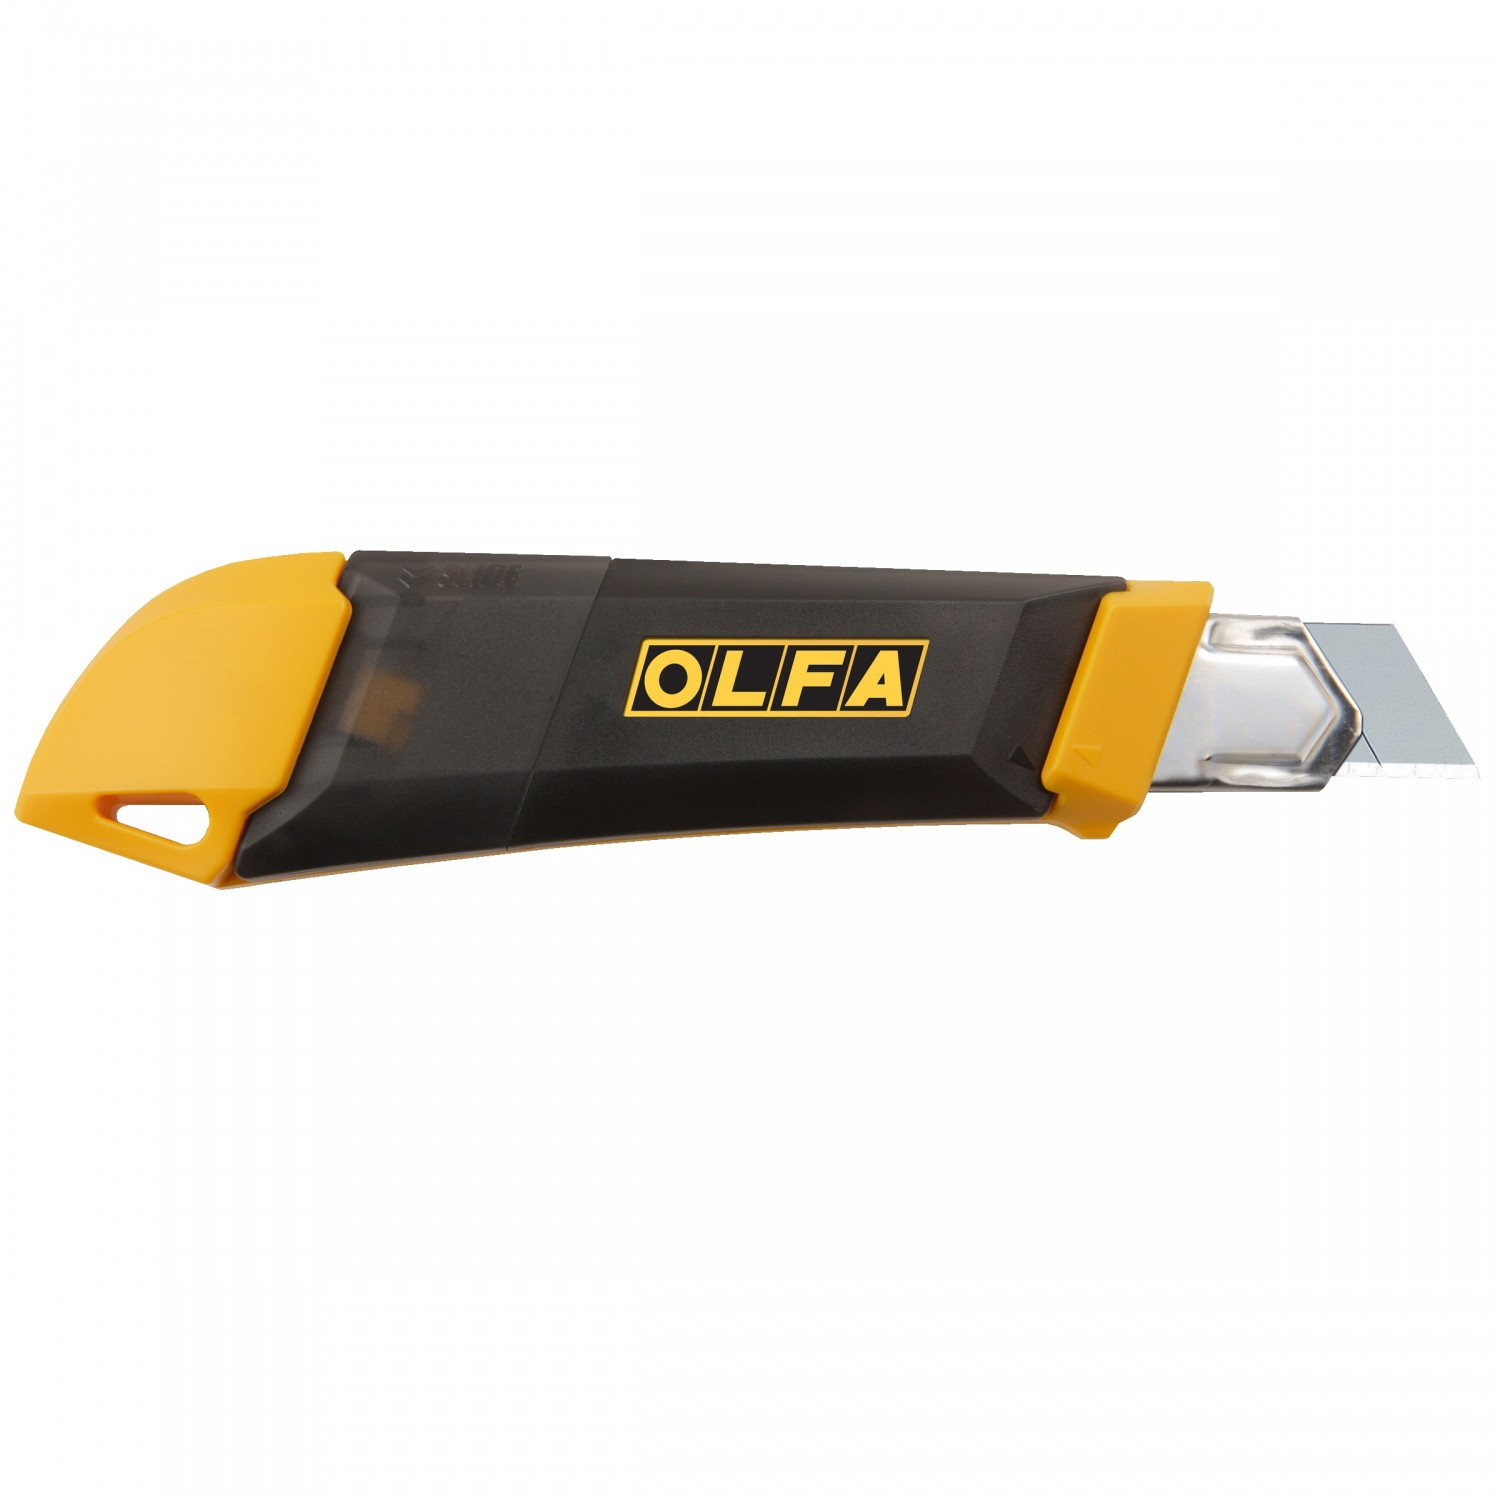 Olfa DL-1 SNAP it 'N' TRAP it Heavy-Duty Utility Knife Back